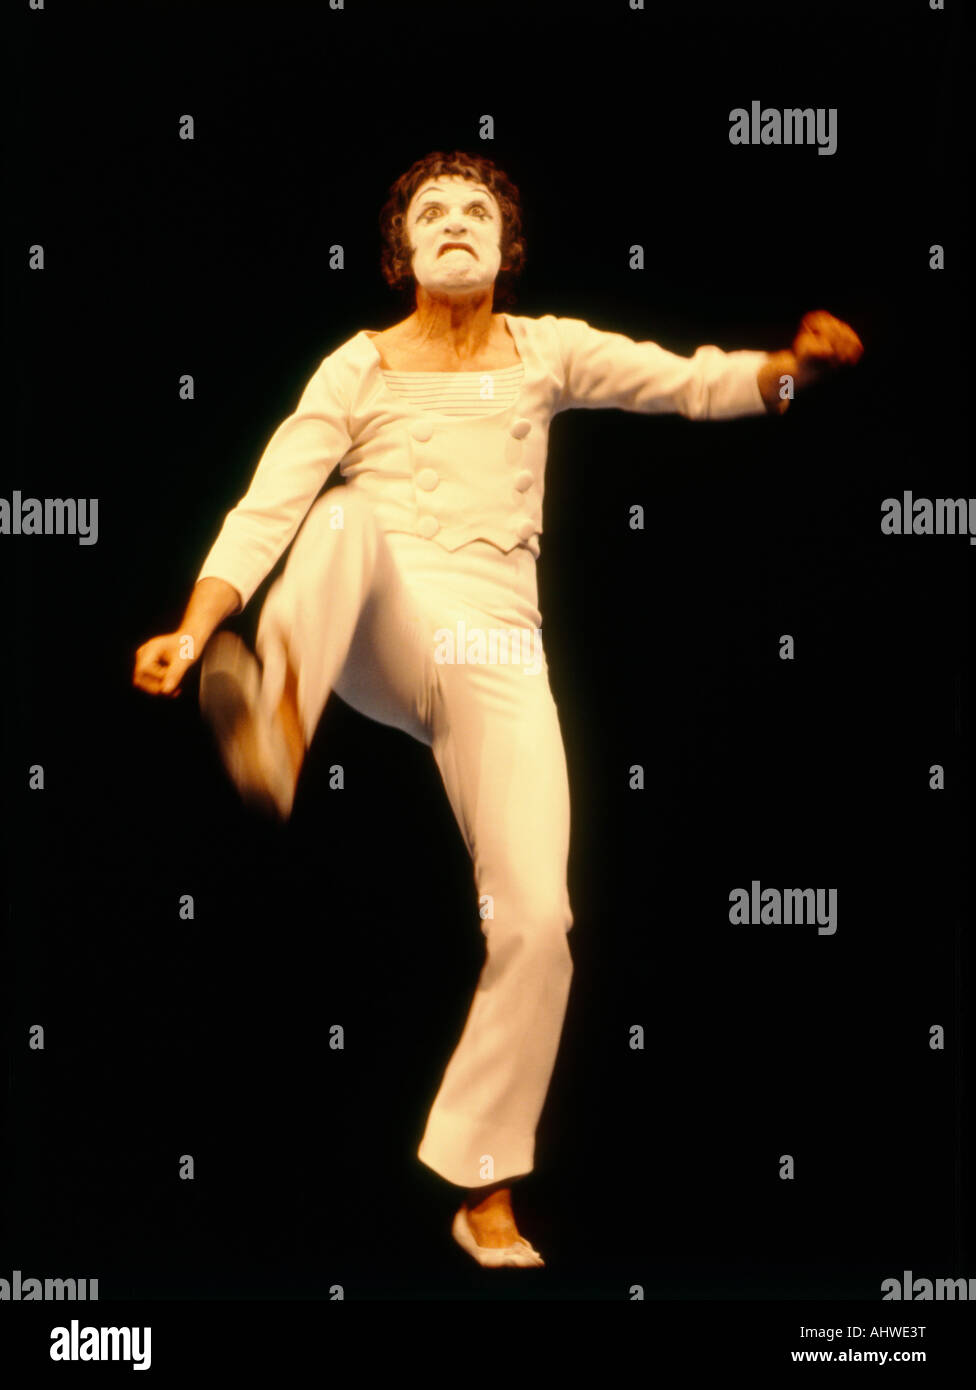 famed french mime artist marcel marceau - Stock Image